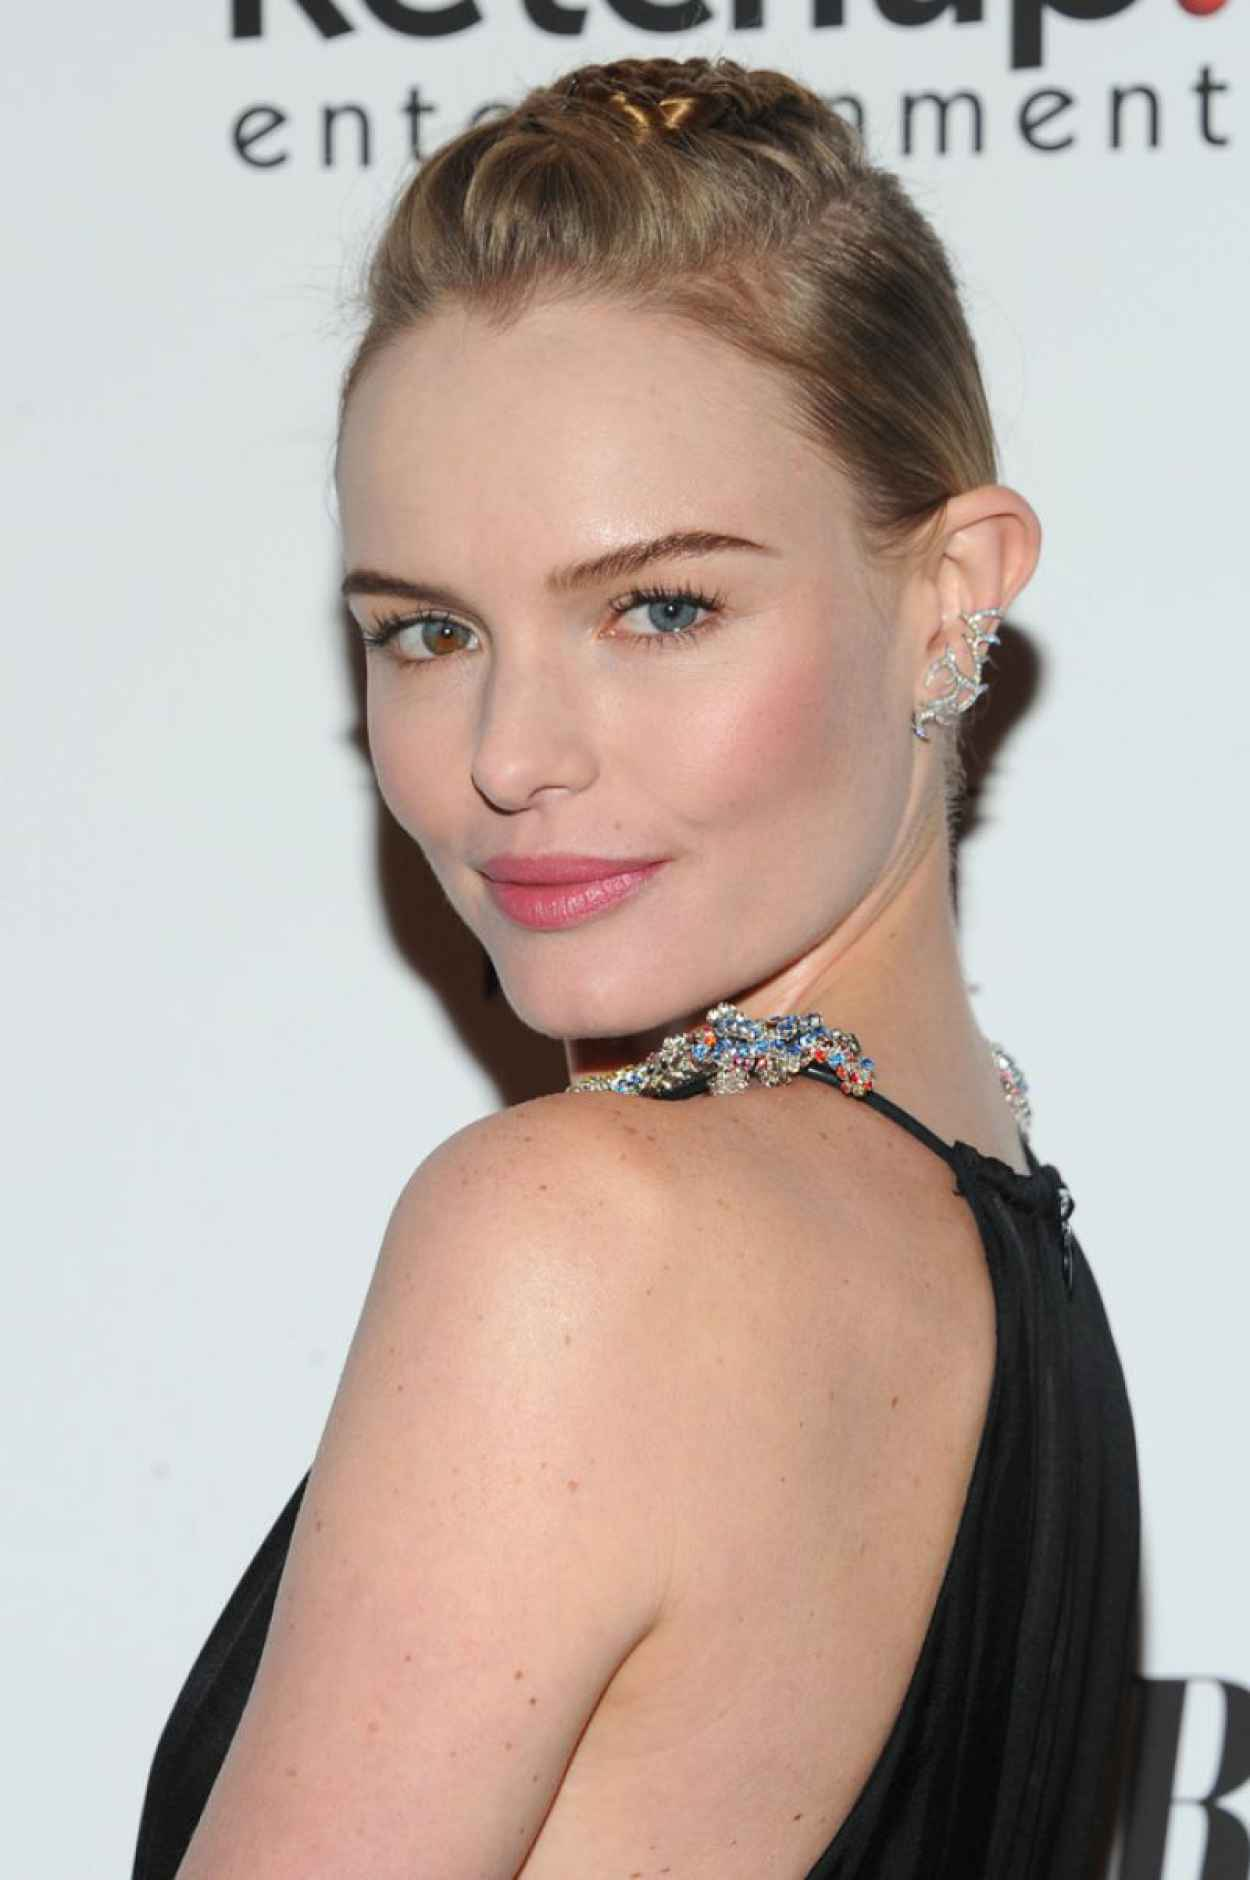 Kate Bosworth Red Carpet Photos - BIG SUR Premiere in New York City-1